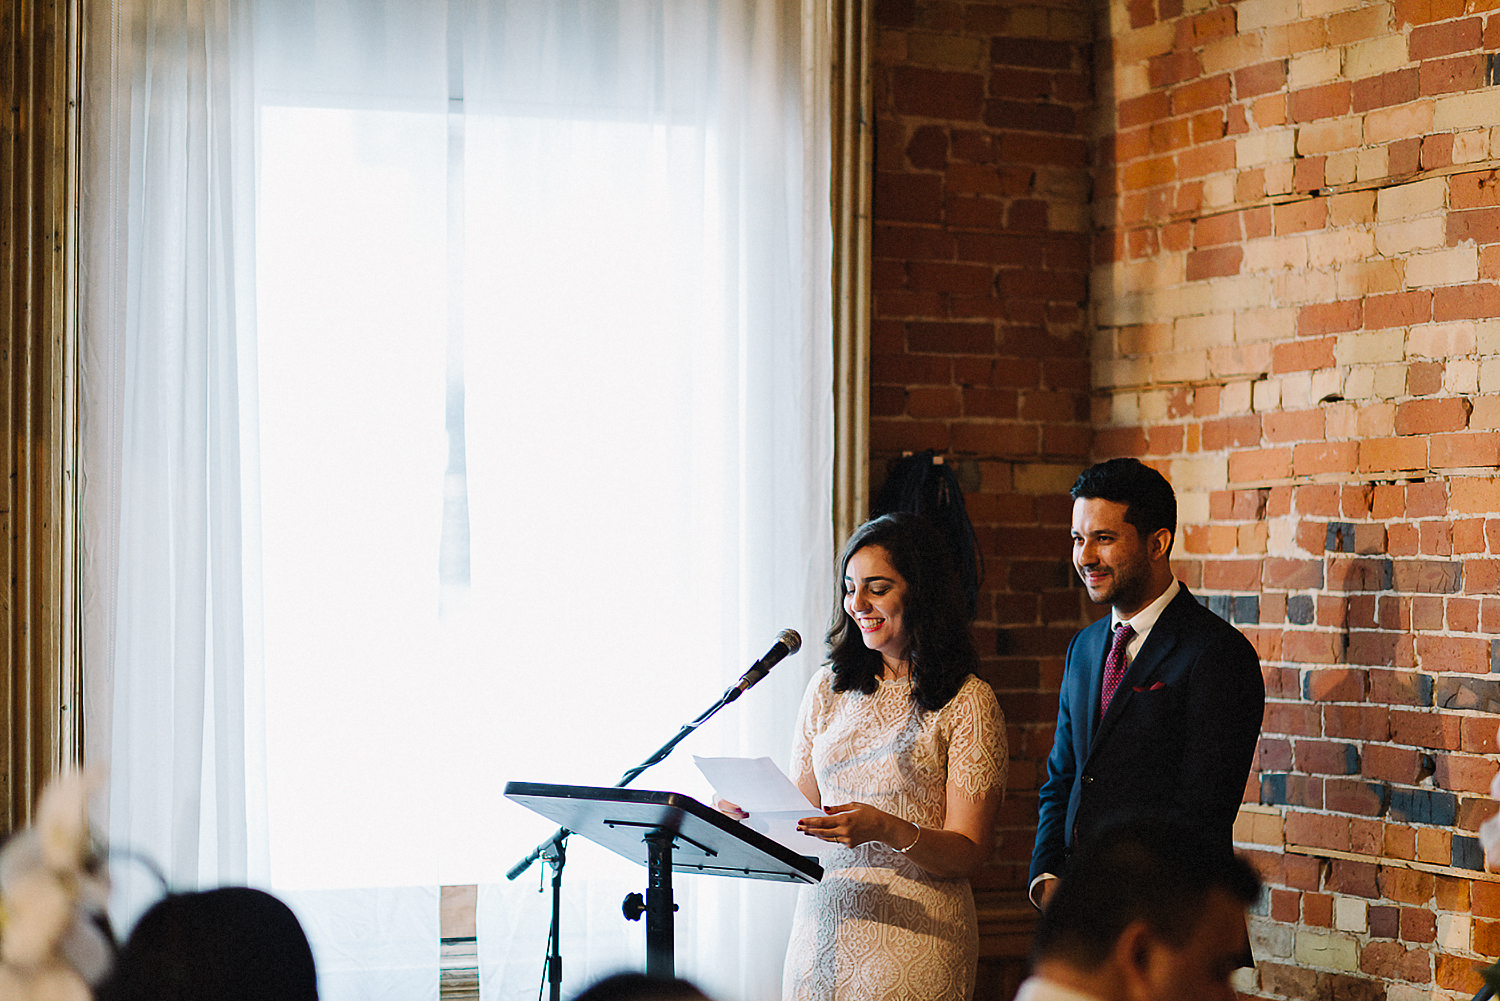 Best-photojournalistic-wedding-photographers-in-toronto-documentary-style-wedding-photography-ryanne-hollies-intimate-portraits-of-bride-and-groom-inside-gladstone-speeches-reactions.jpg